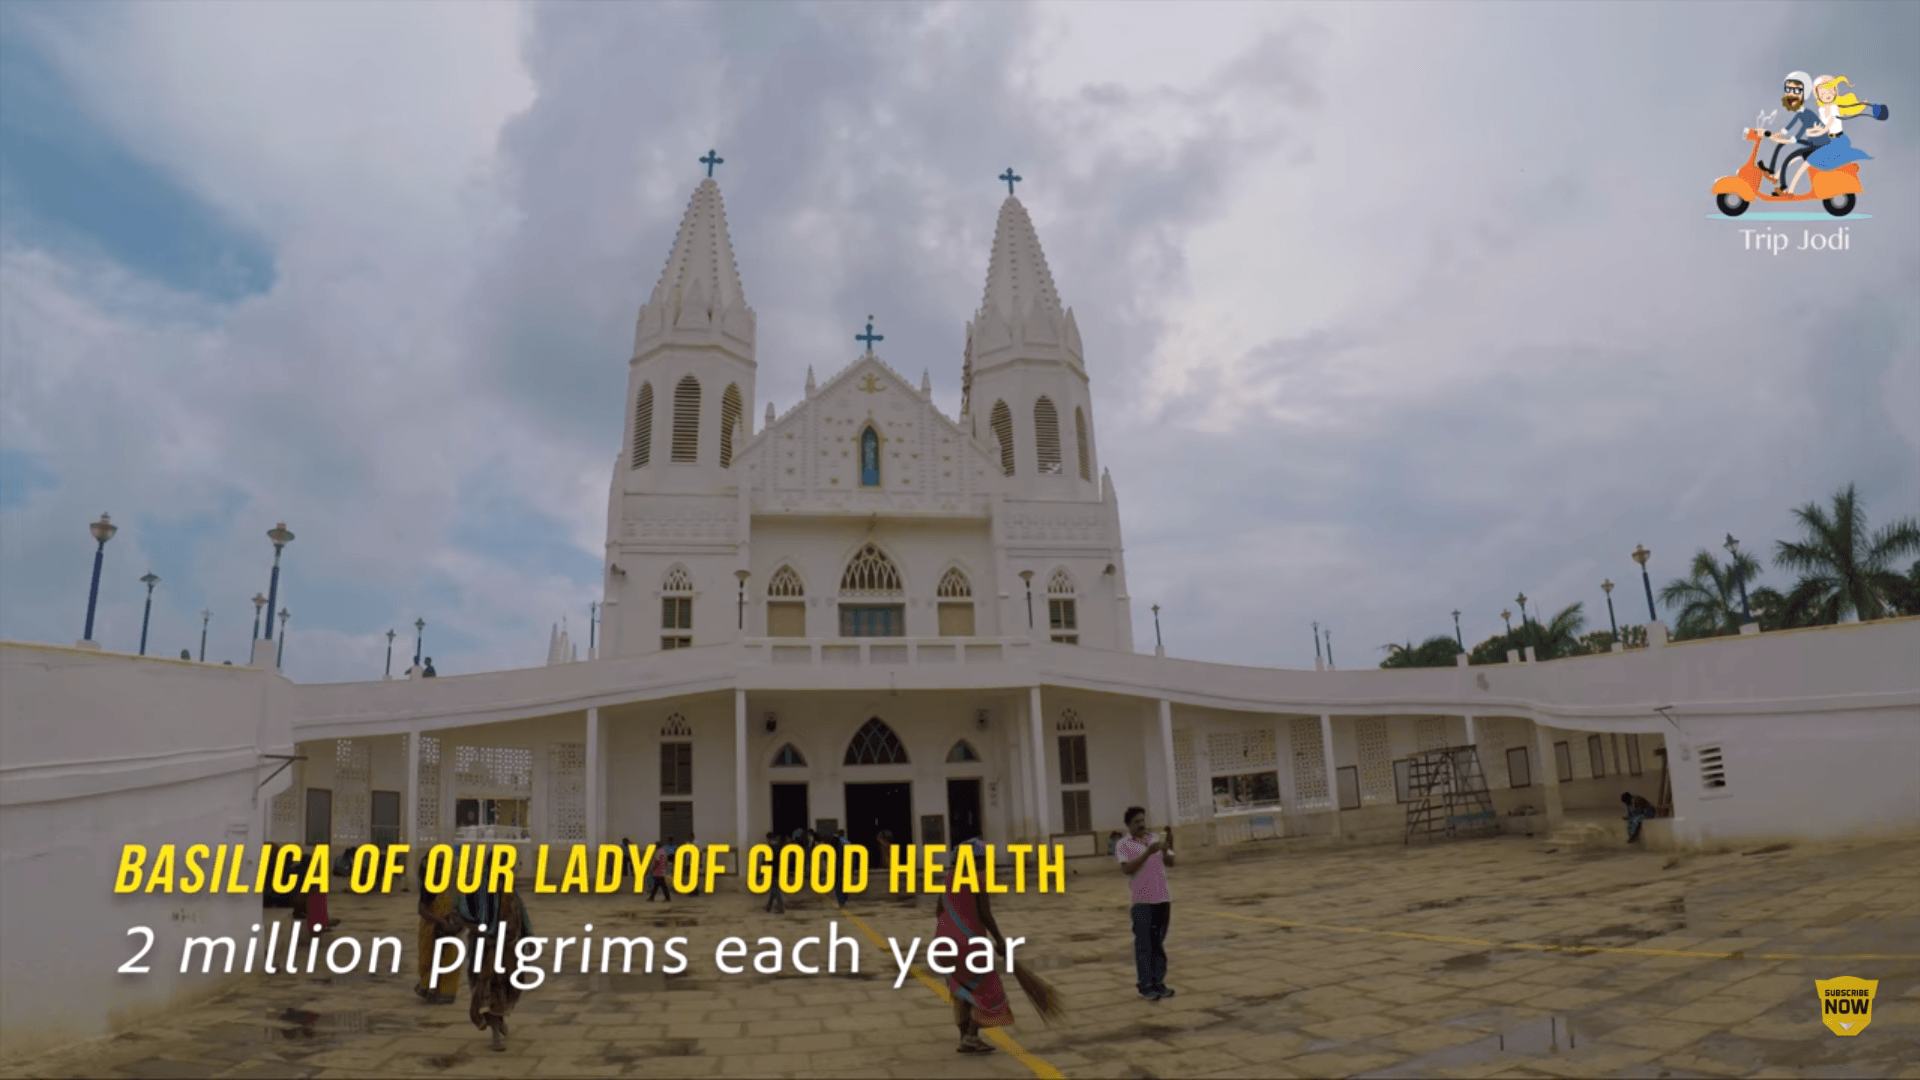 Our Lady of Good Health, Velankanni – TripJodi's Pilgrimage Video